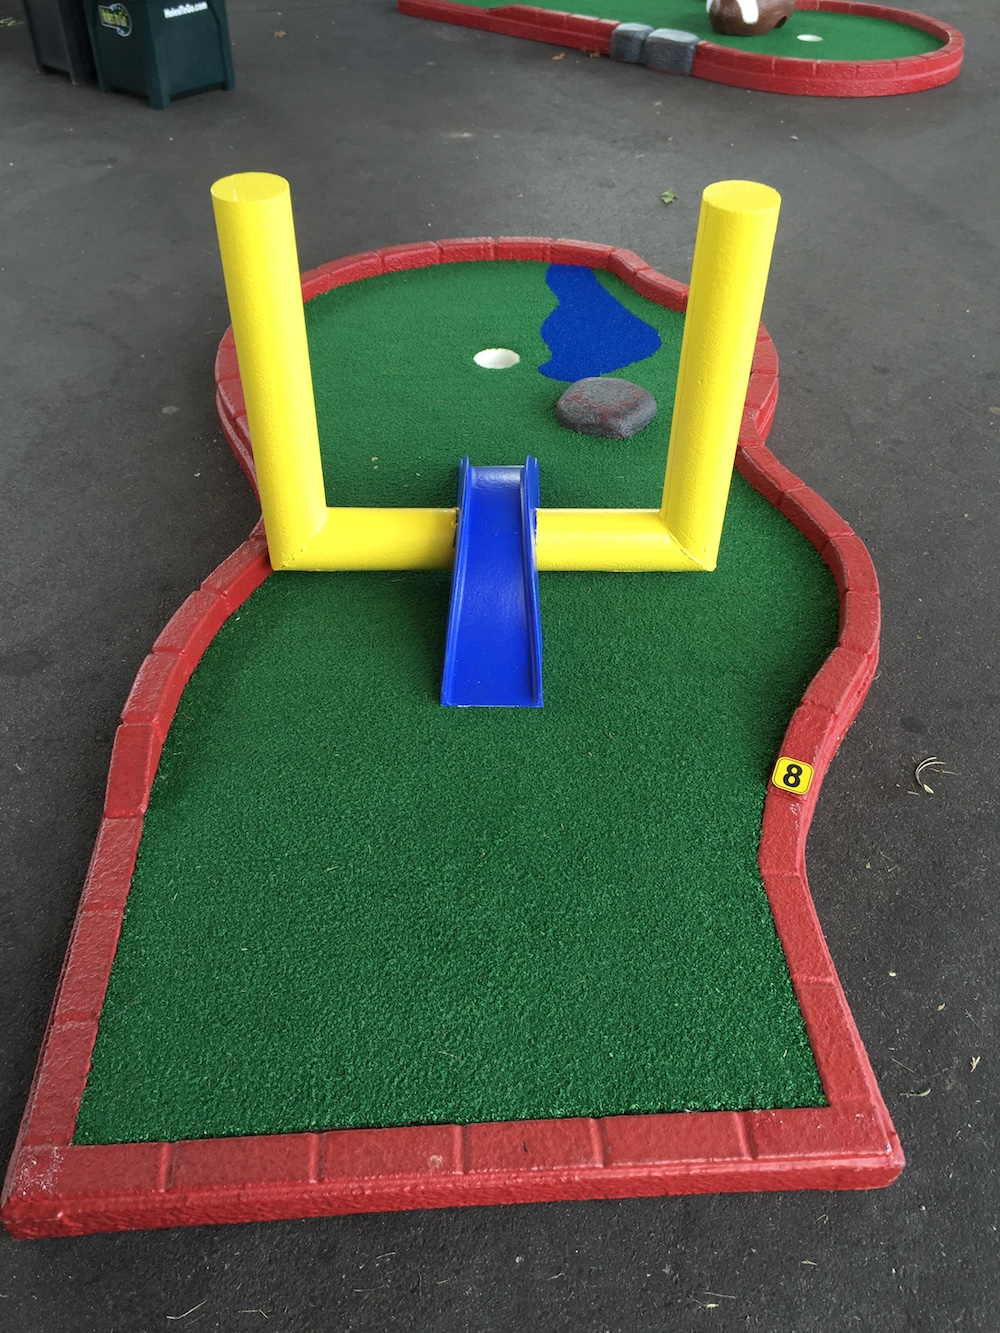 Football Themed Portable Mini Golf Course & Tent Rentals - Holes To Go